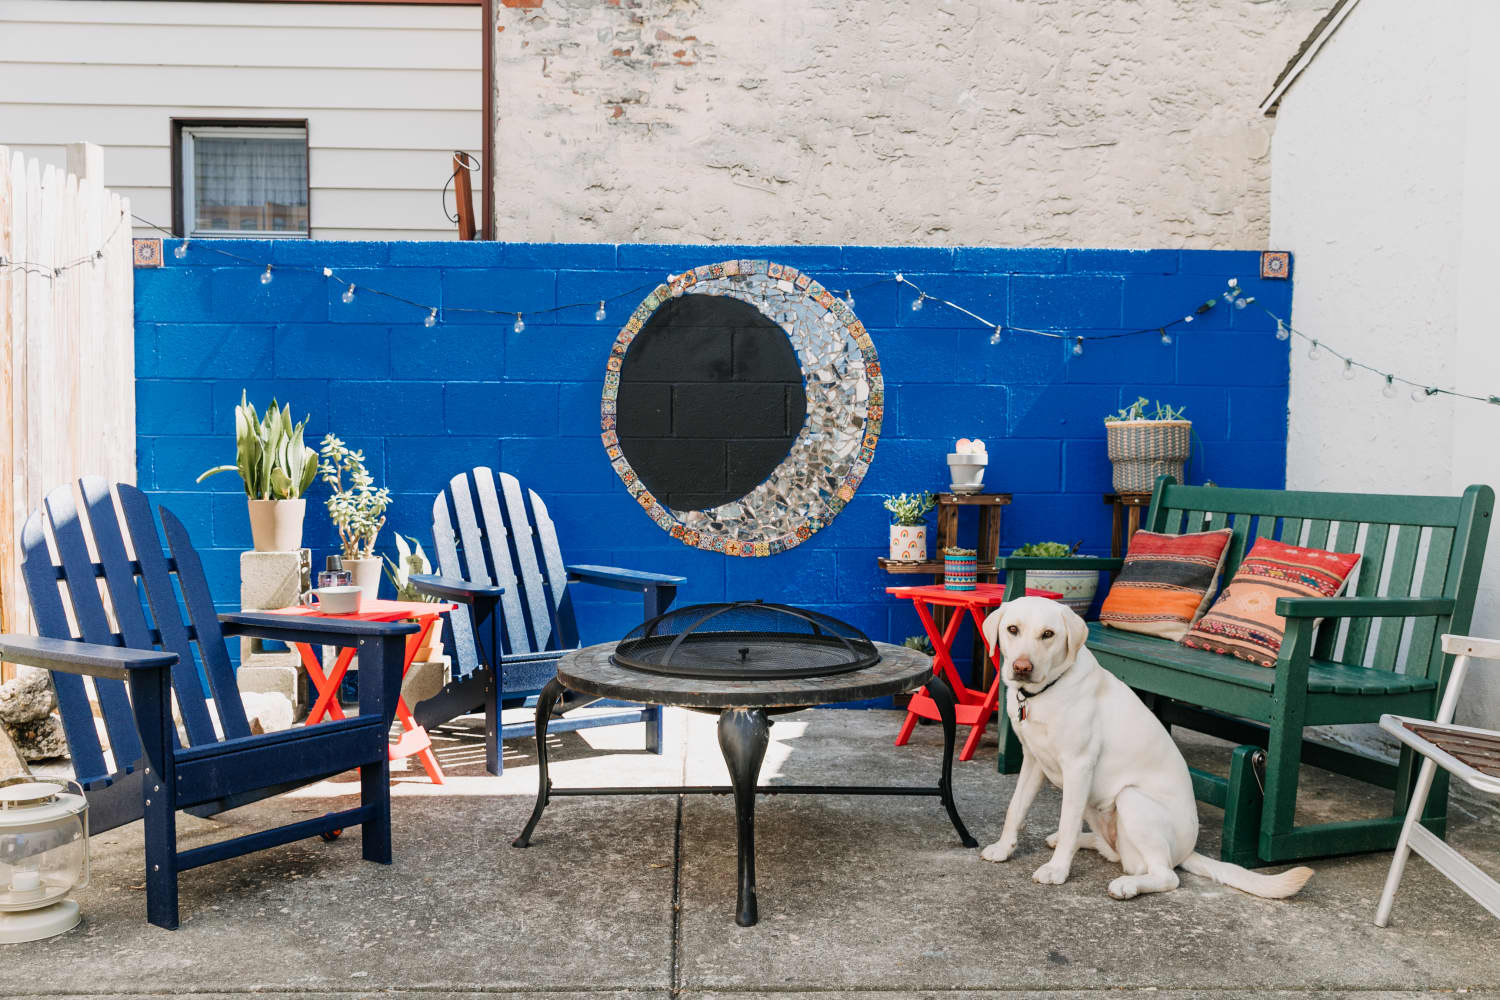 7 Ways to Turn Your Outdoor Space into an Oasis, Even if It's Teeny Tiny